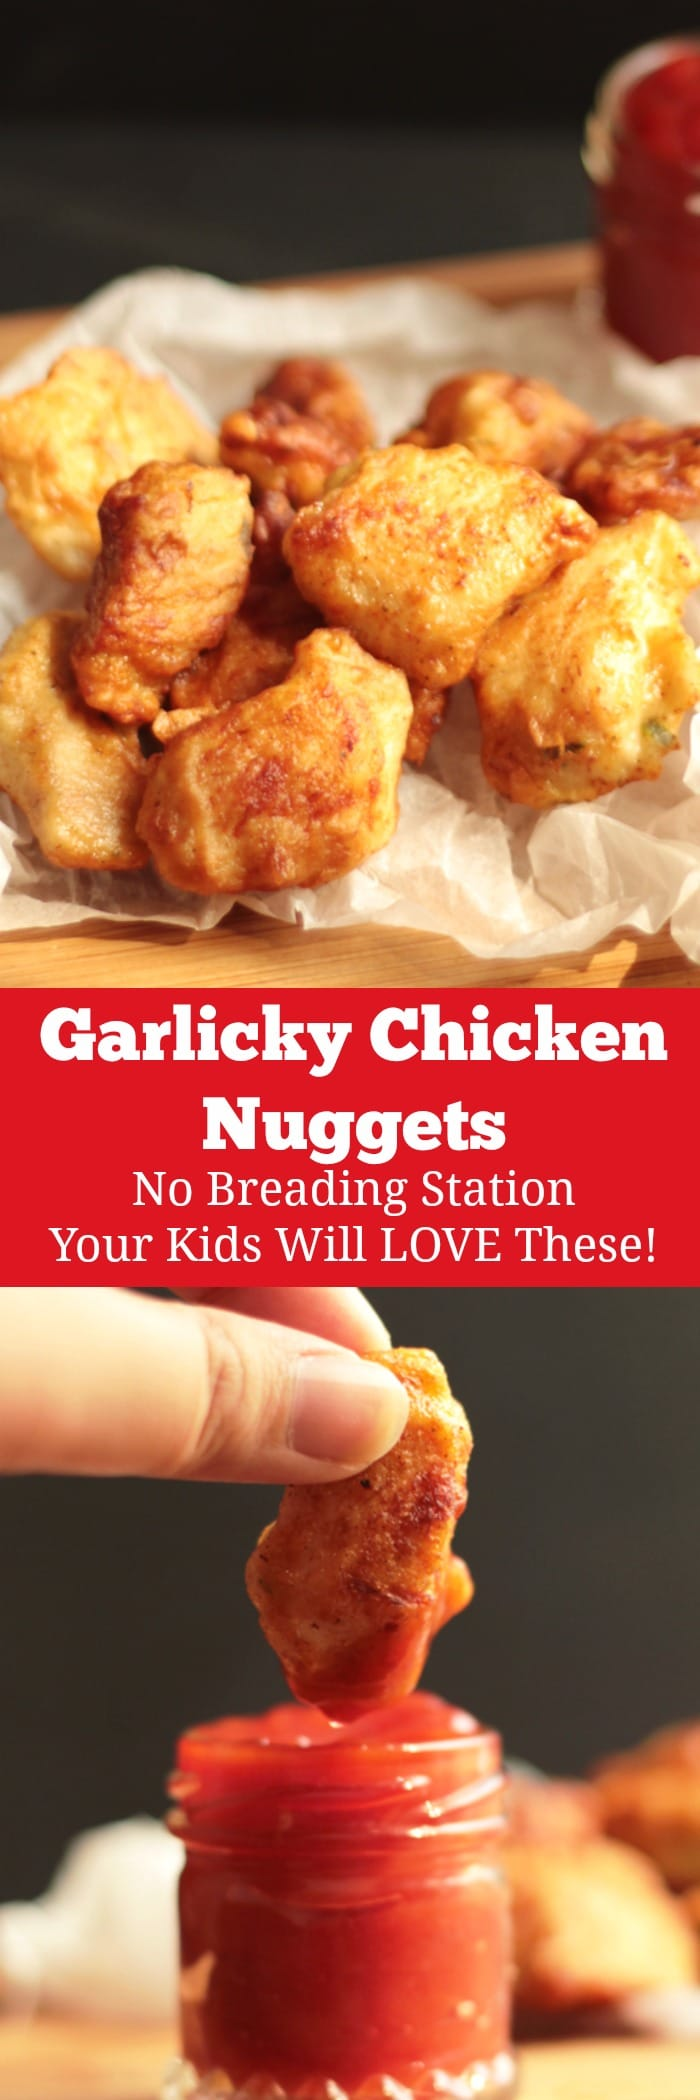 Garlicky Chicken Nuggets